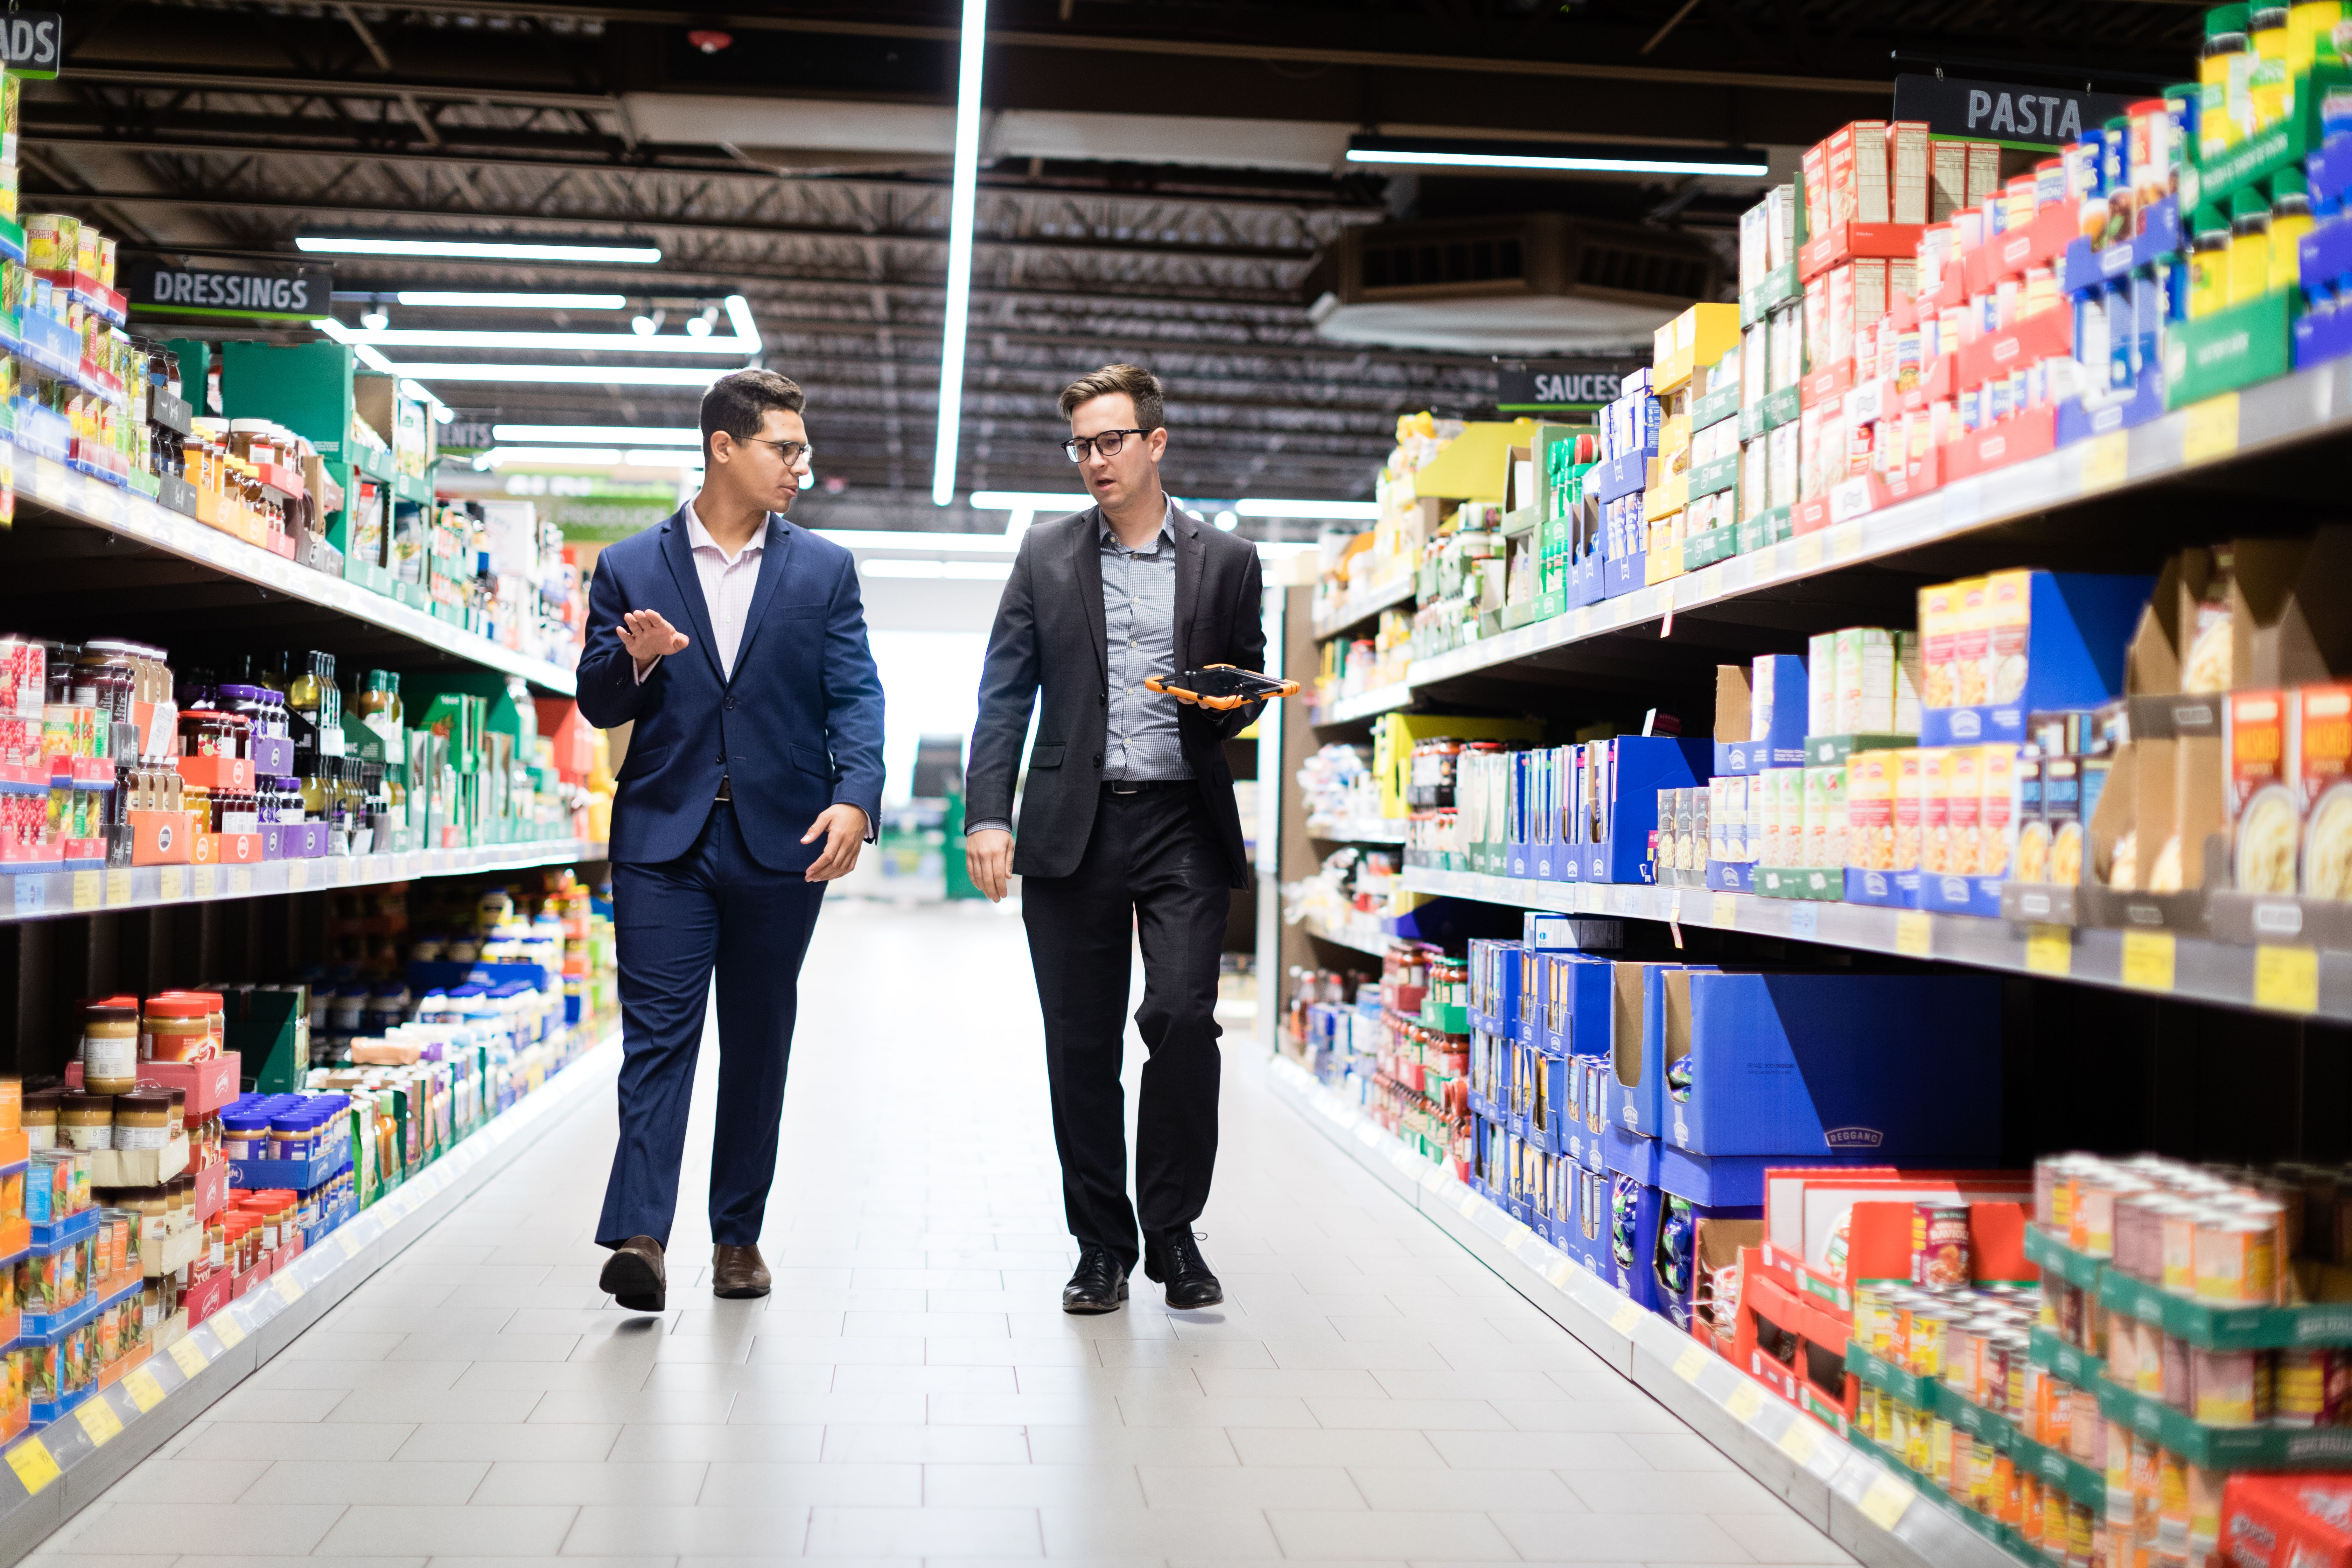 Intern and supervisor walk the aisle at an ALDI store.